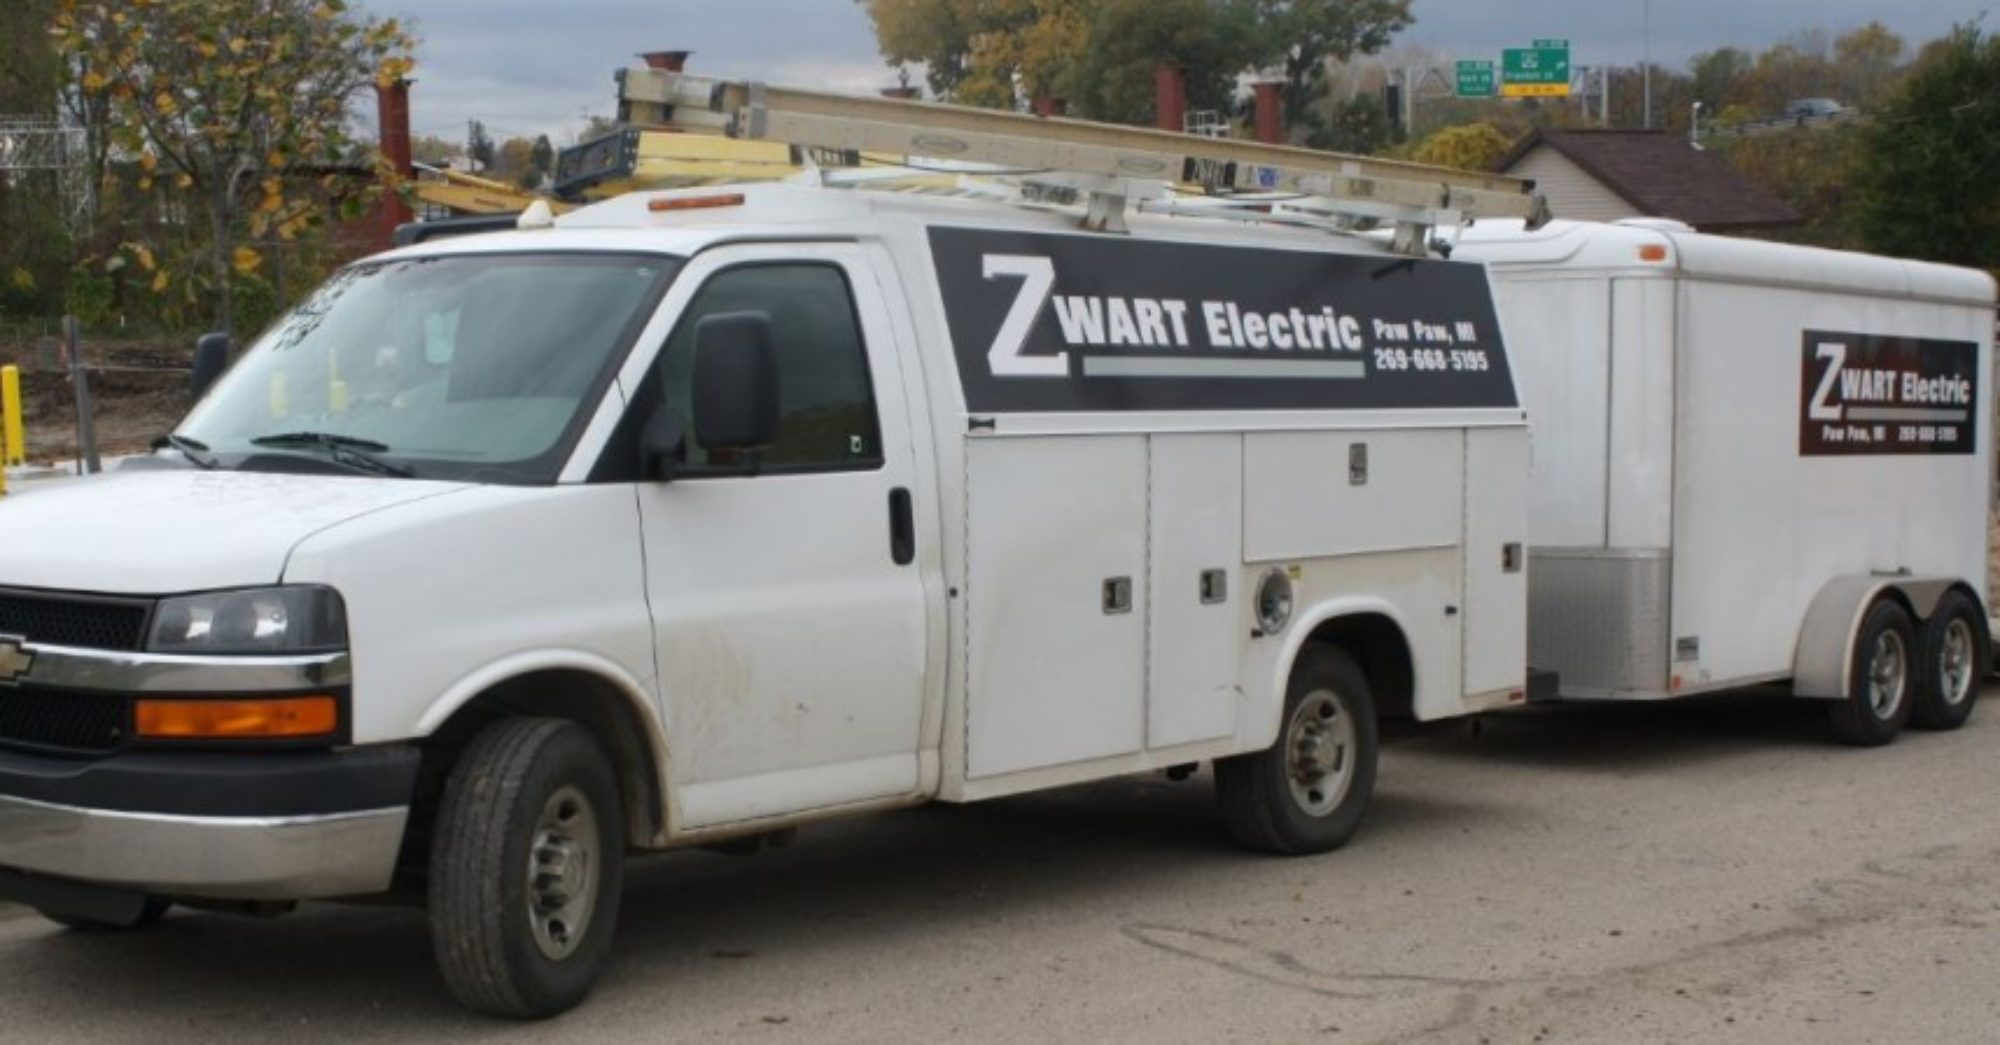 Zwart Electric